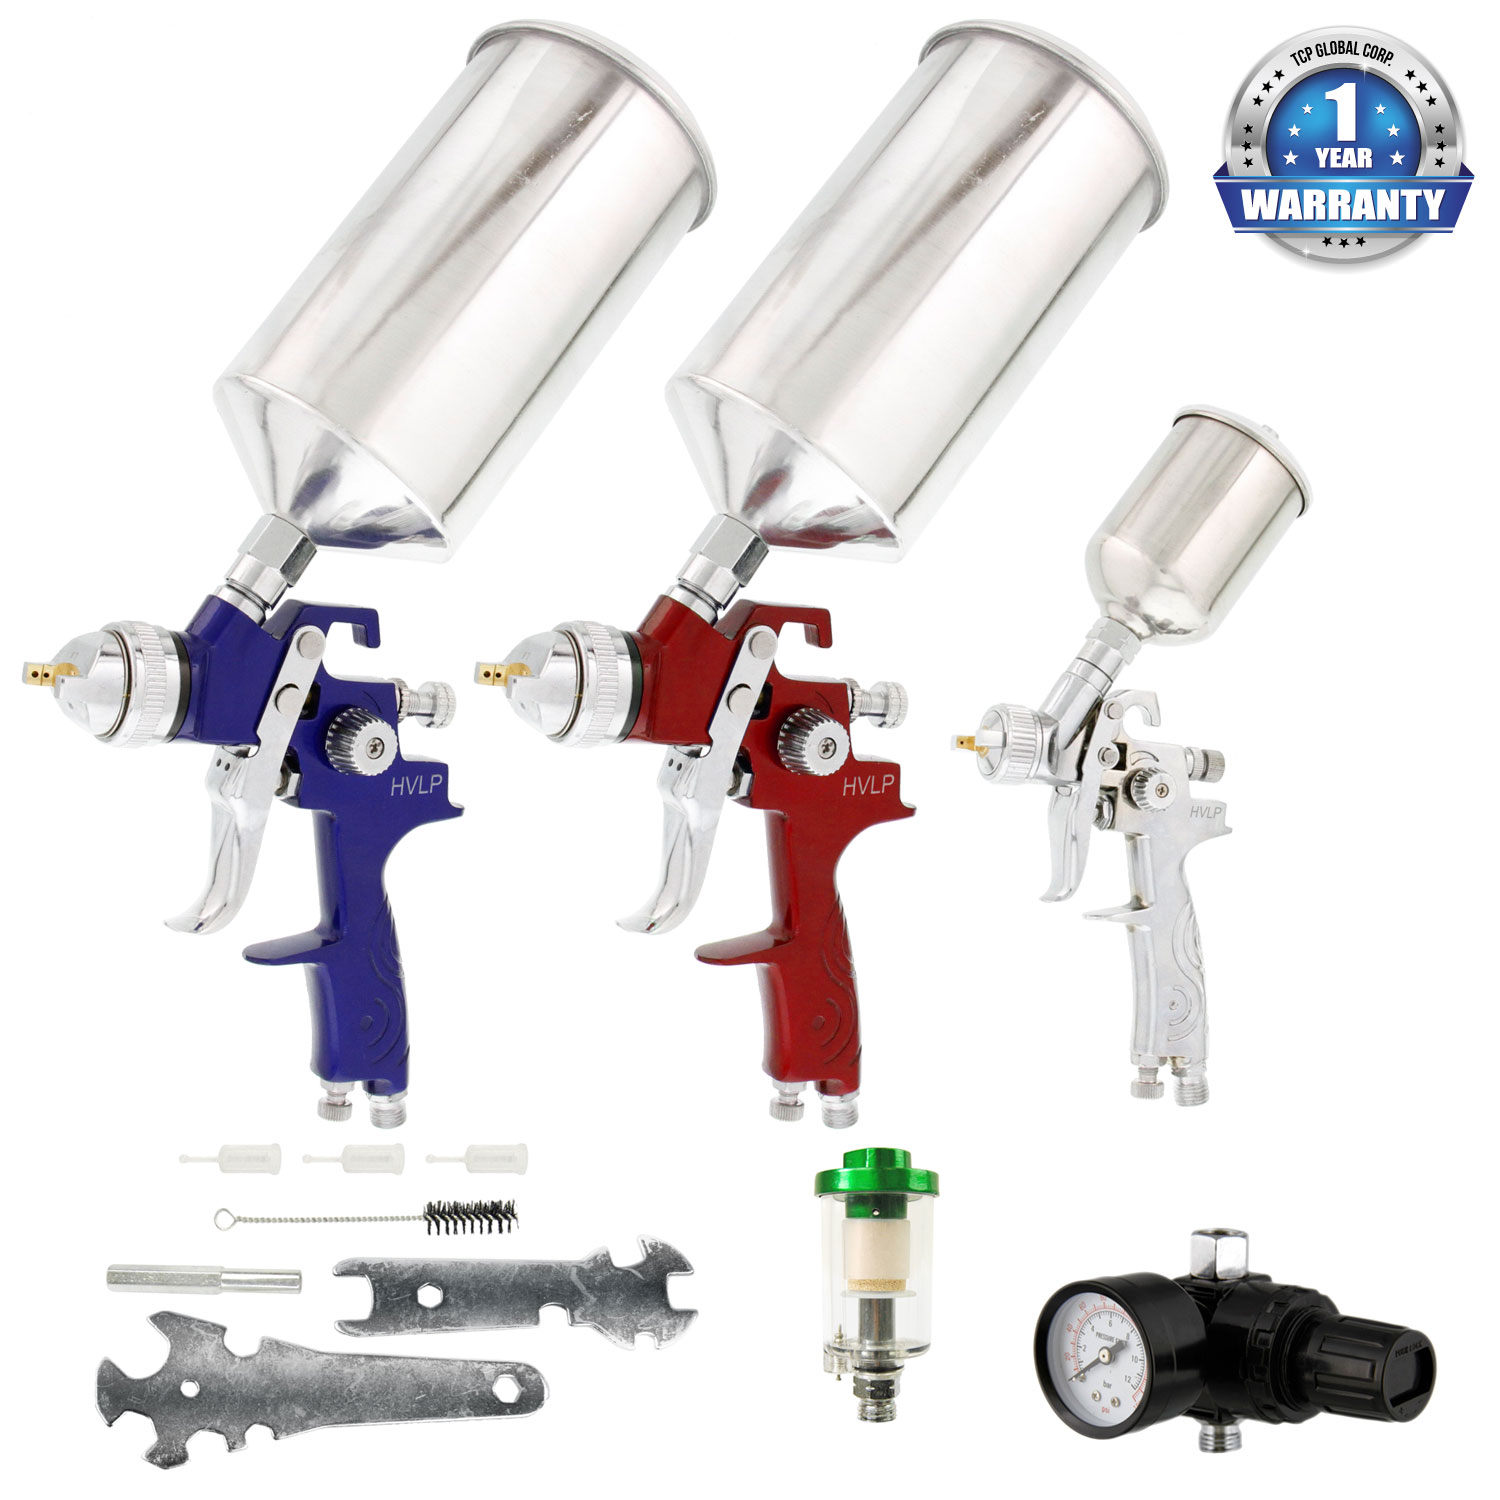 TCP Global® Brand HVLP Spray Gun Set - 3 Sprayguns with Cups, Air Regulator & Maintenance Kit for all Auto Paint